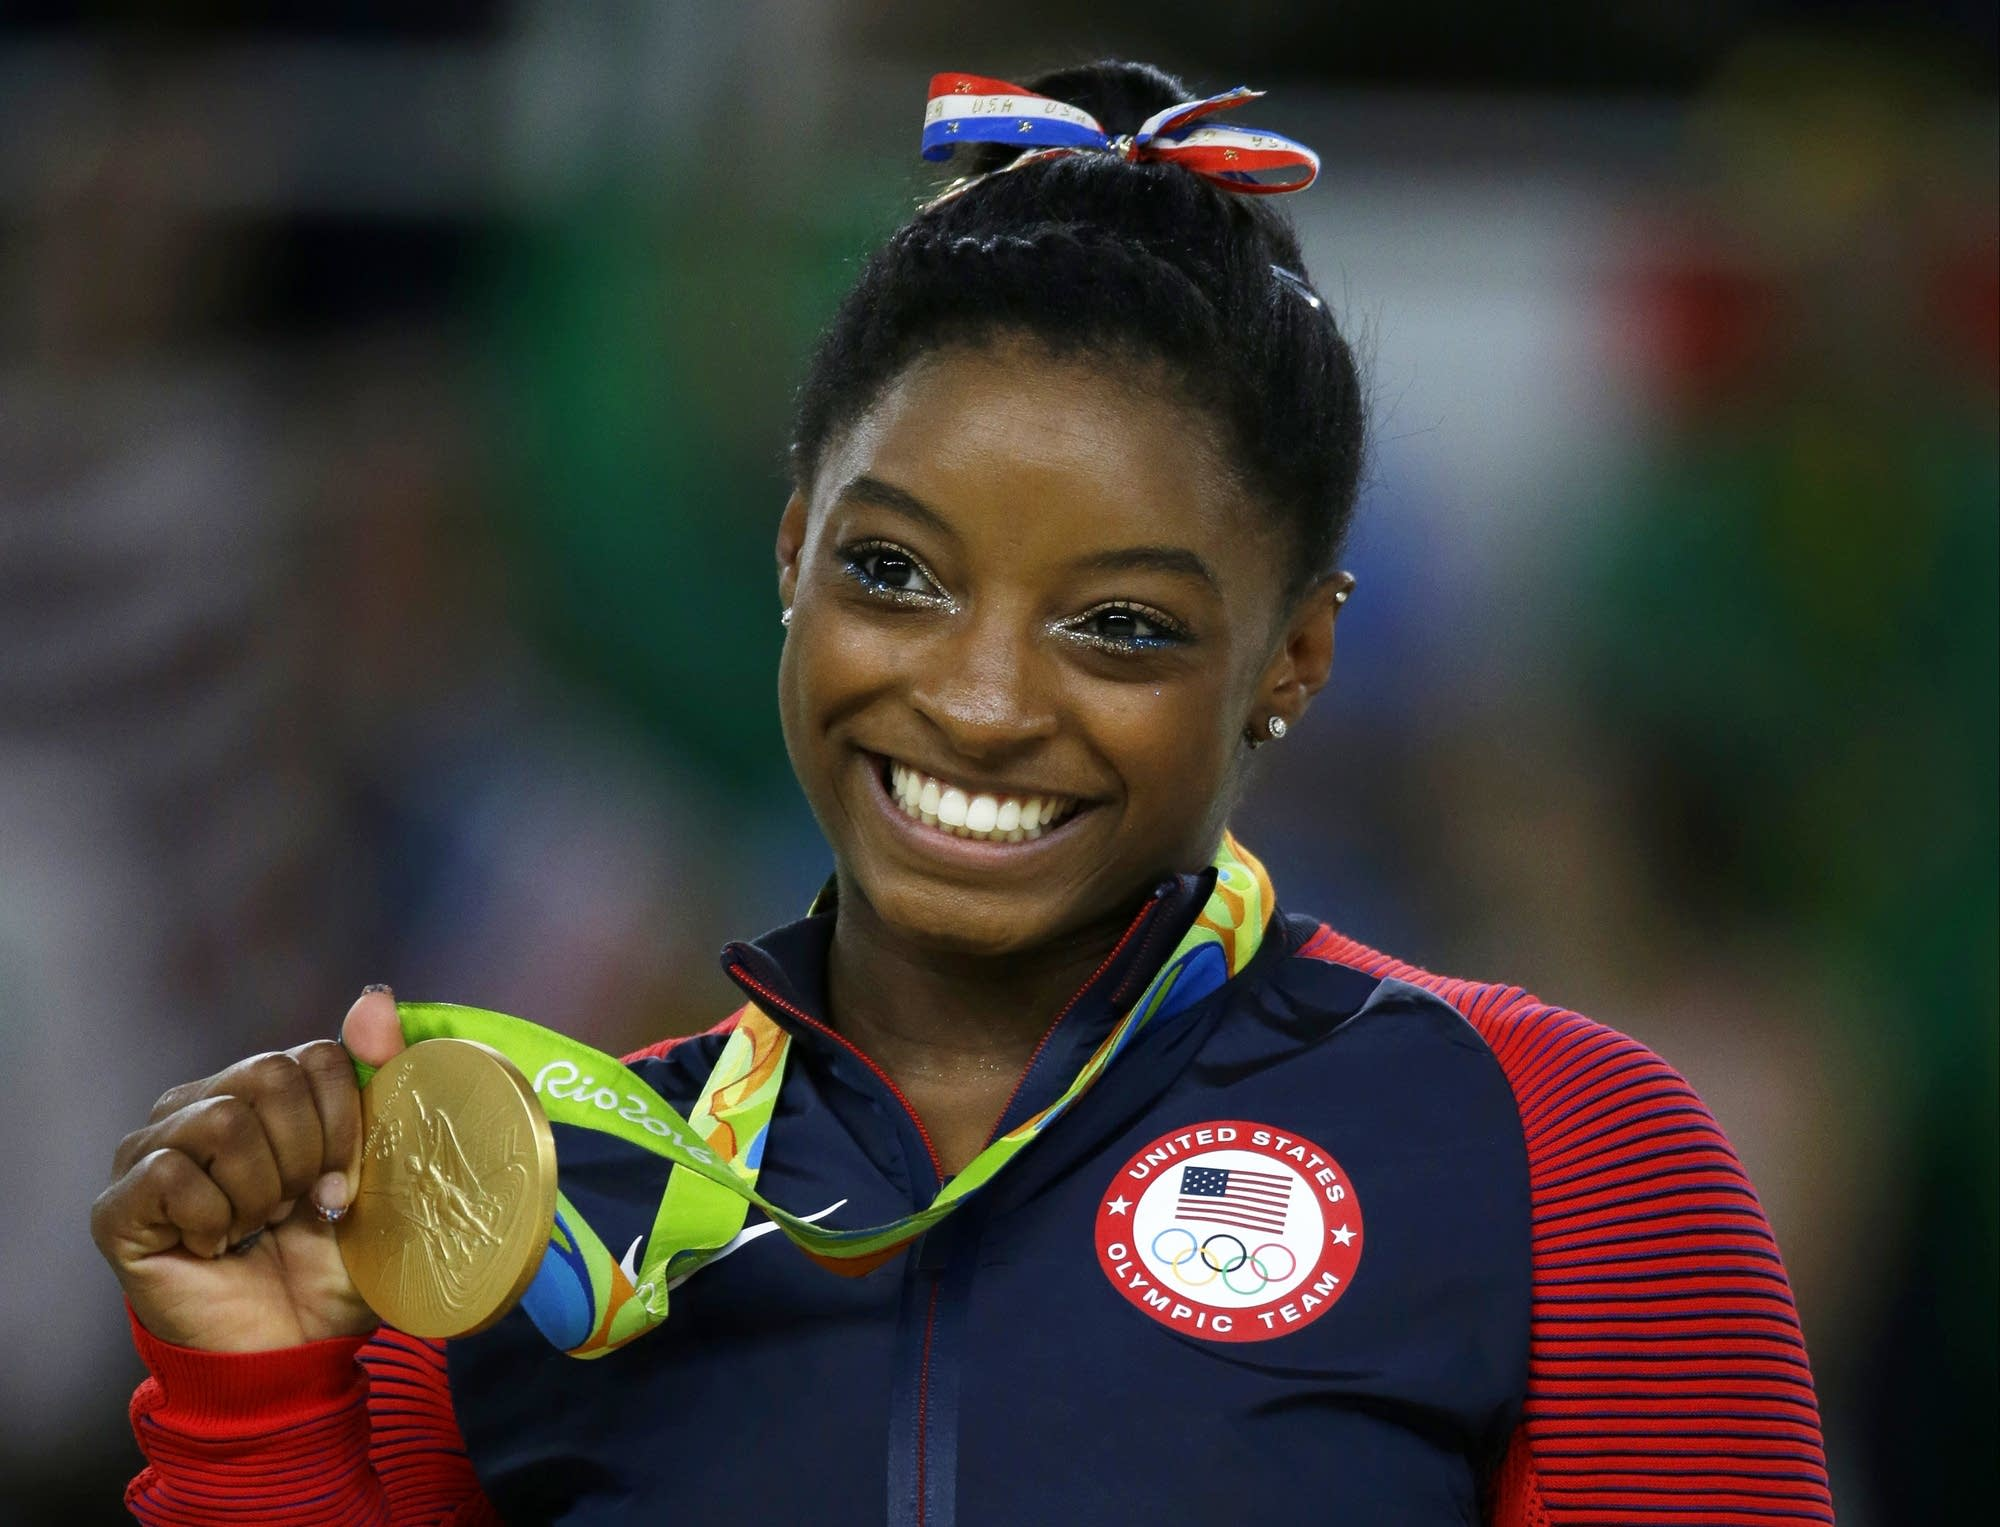 Images Simone Biles nudes (19 foto and video), Sexy, Hot, Boobs, legs 2006